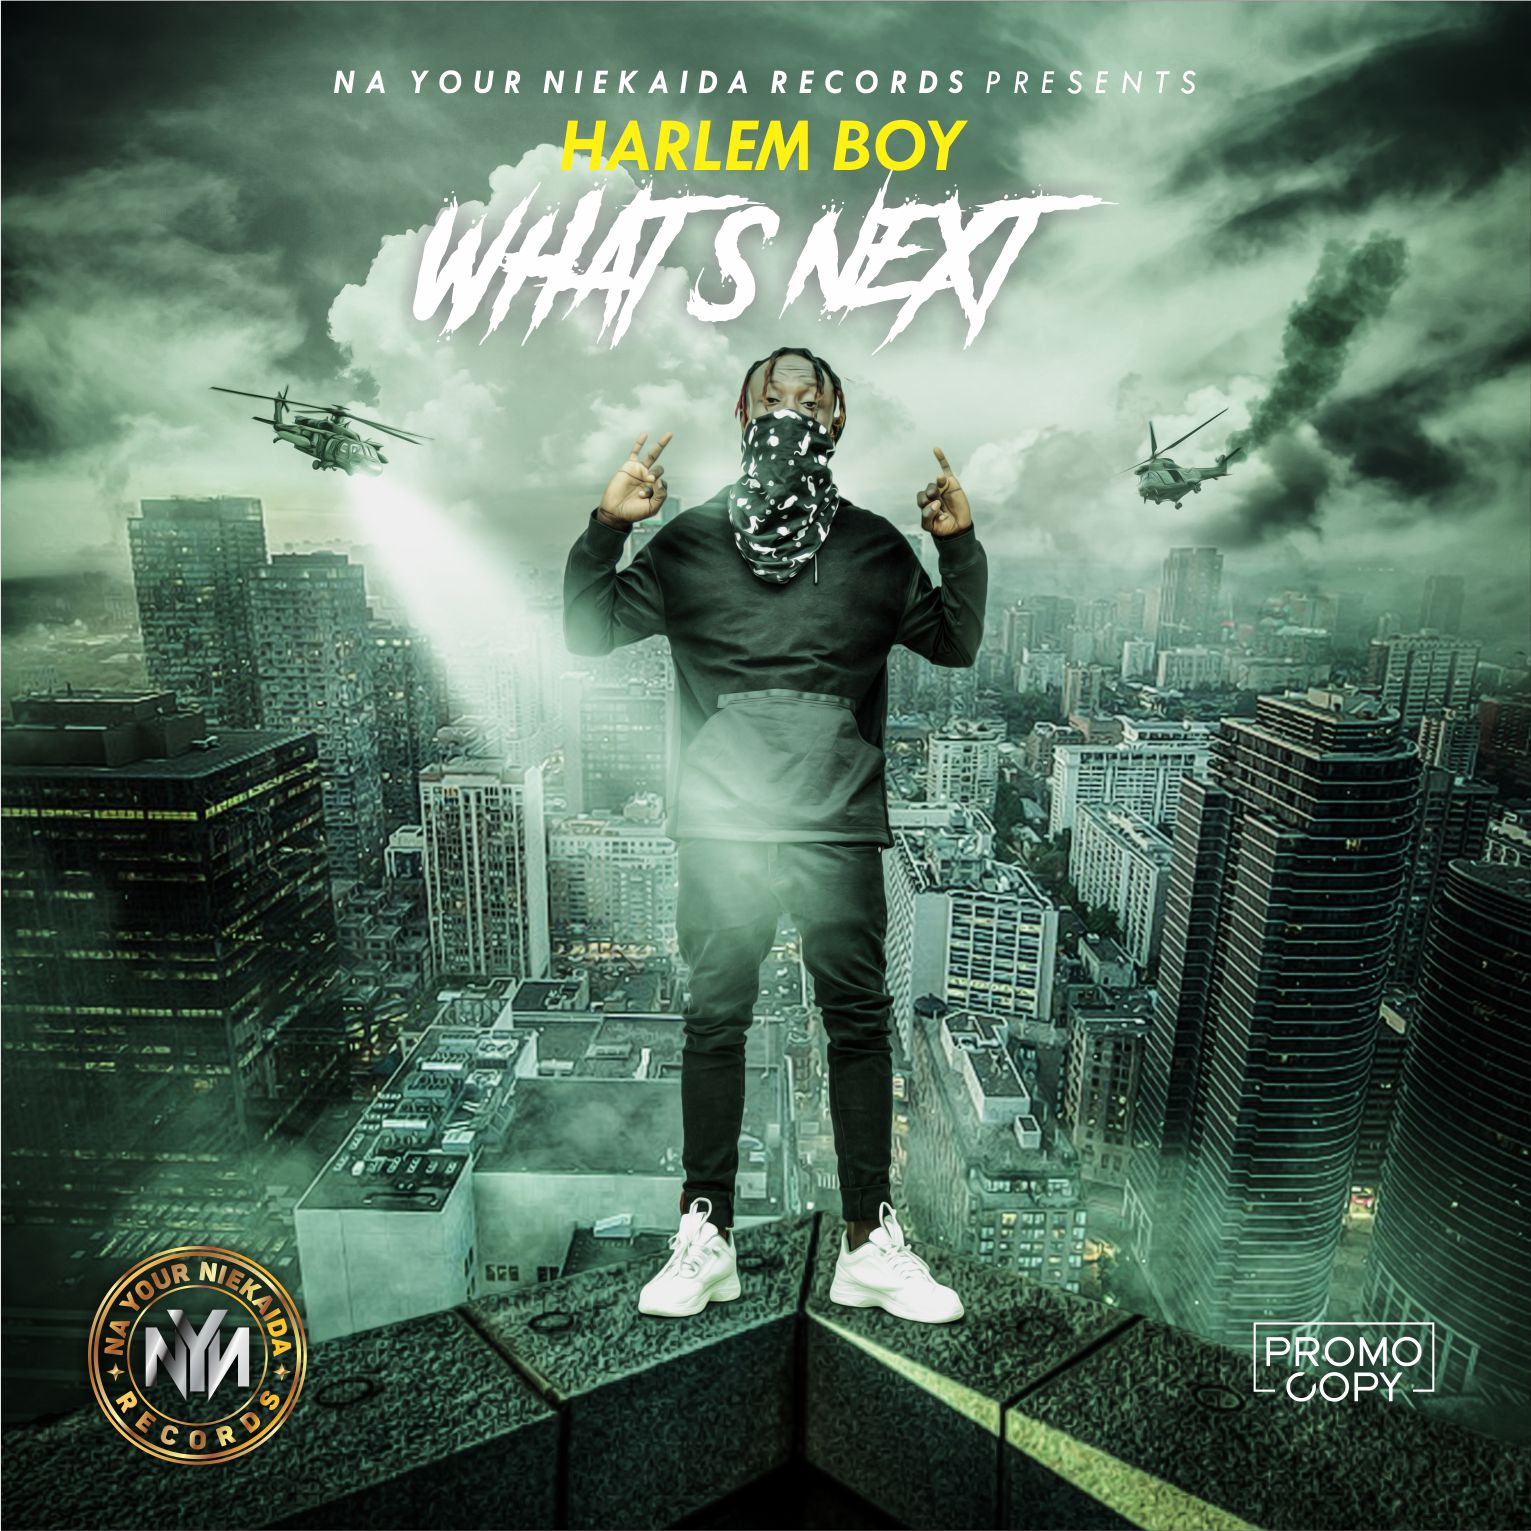 Harlem Boy – What's Next